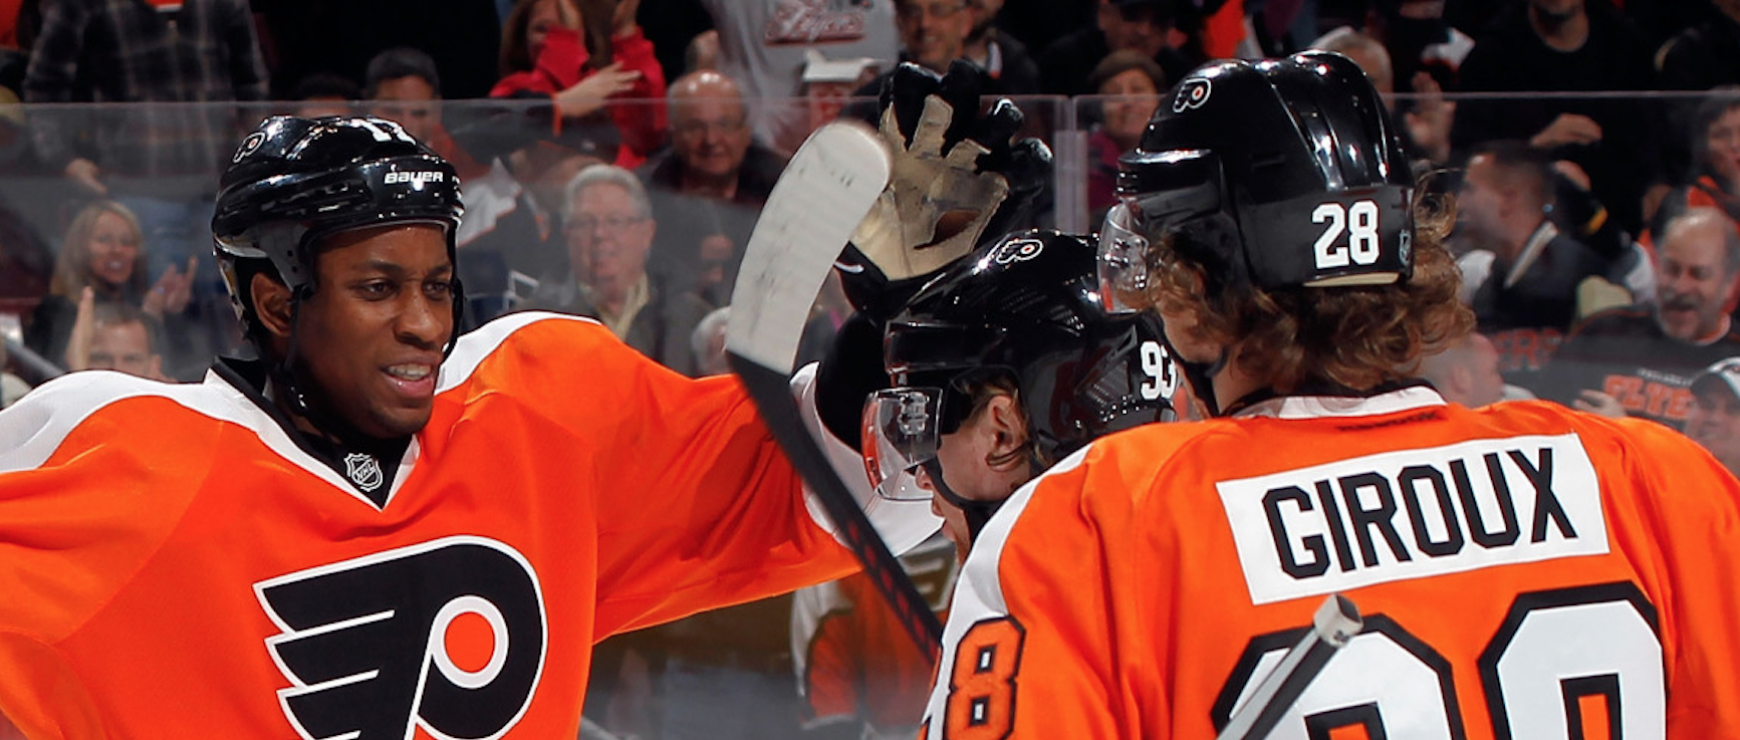 Wayne Simmonds and Claude Giroux celebrating together on the ice during a game night at the Wells Fargo Center